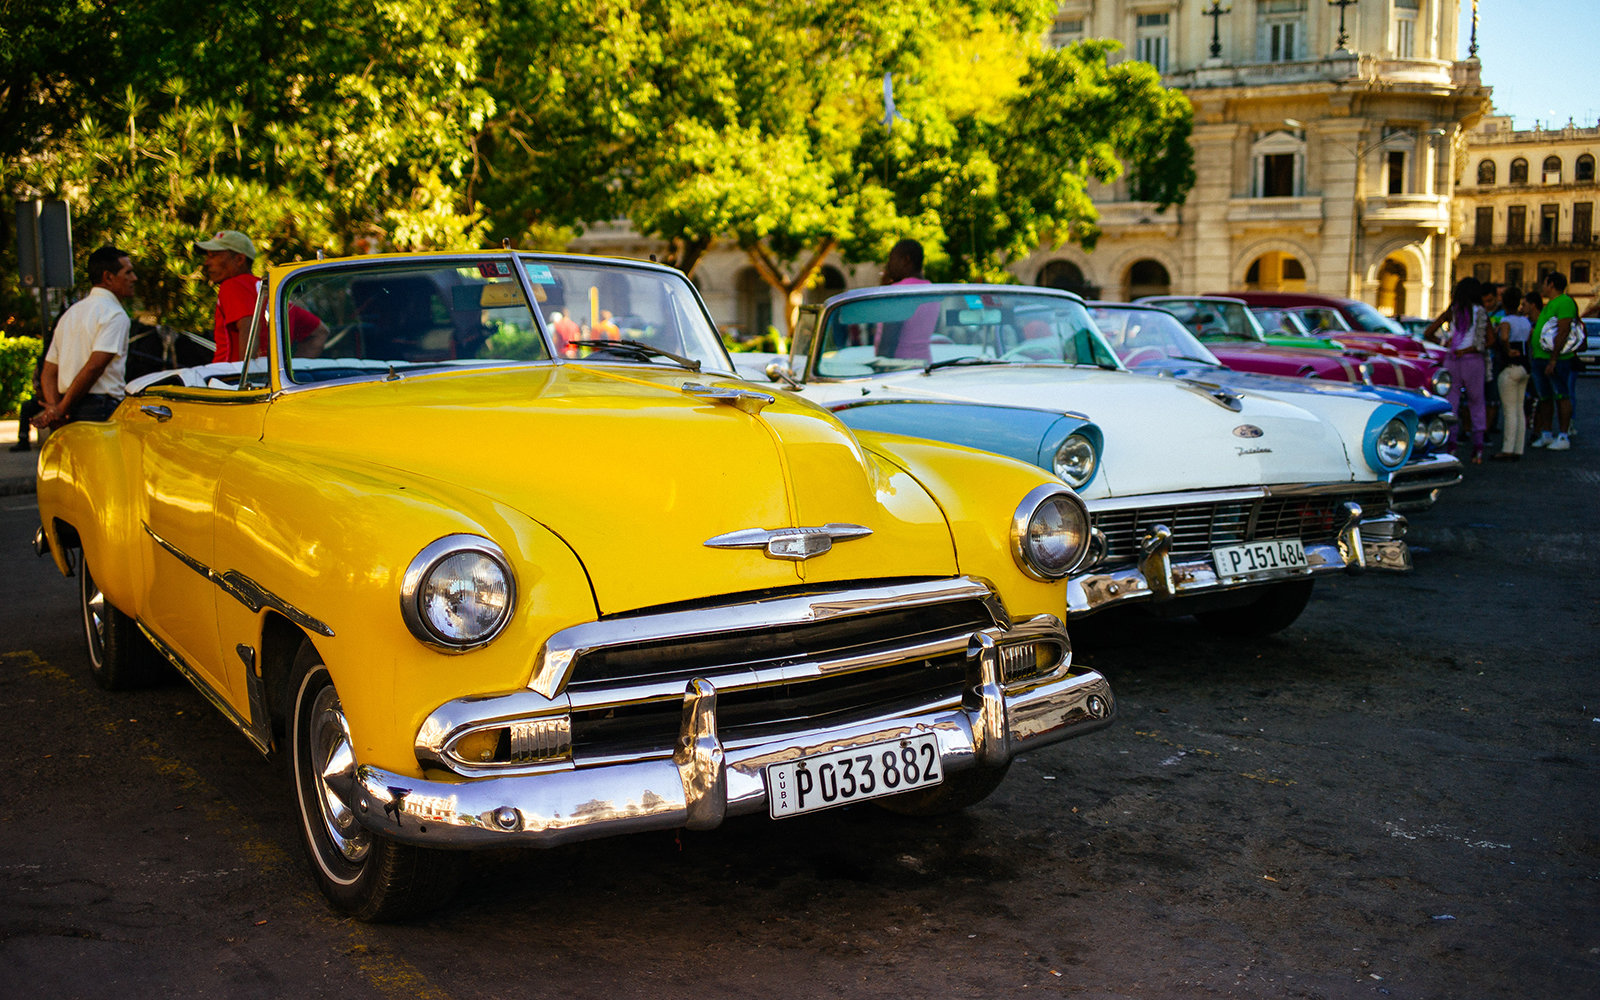 HAVANA, CUBA - DECEMBER 19: A general view of vintage cars in Central Park on December 19, 2014 in Havana, Cuba. (Photo by Ben Pruchnie/Getty Images)